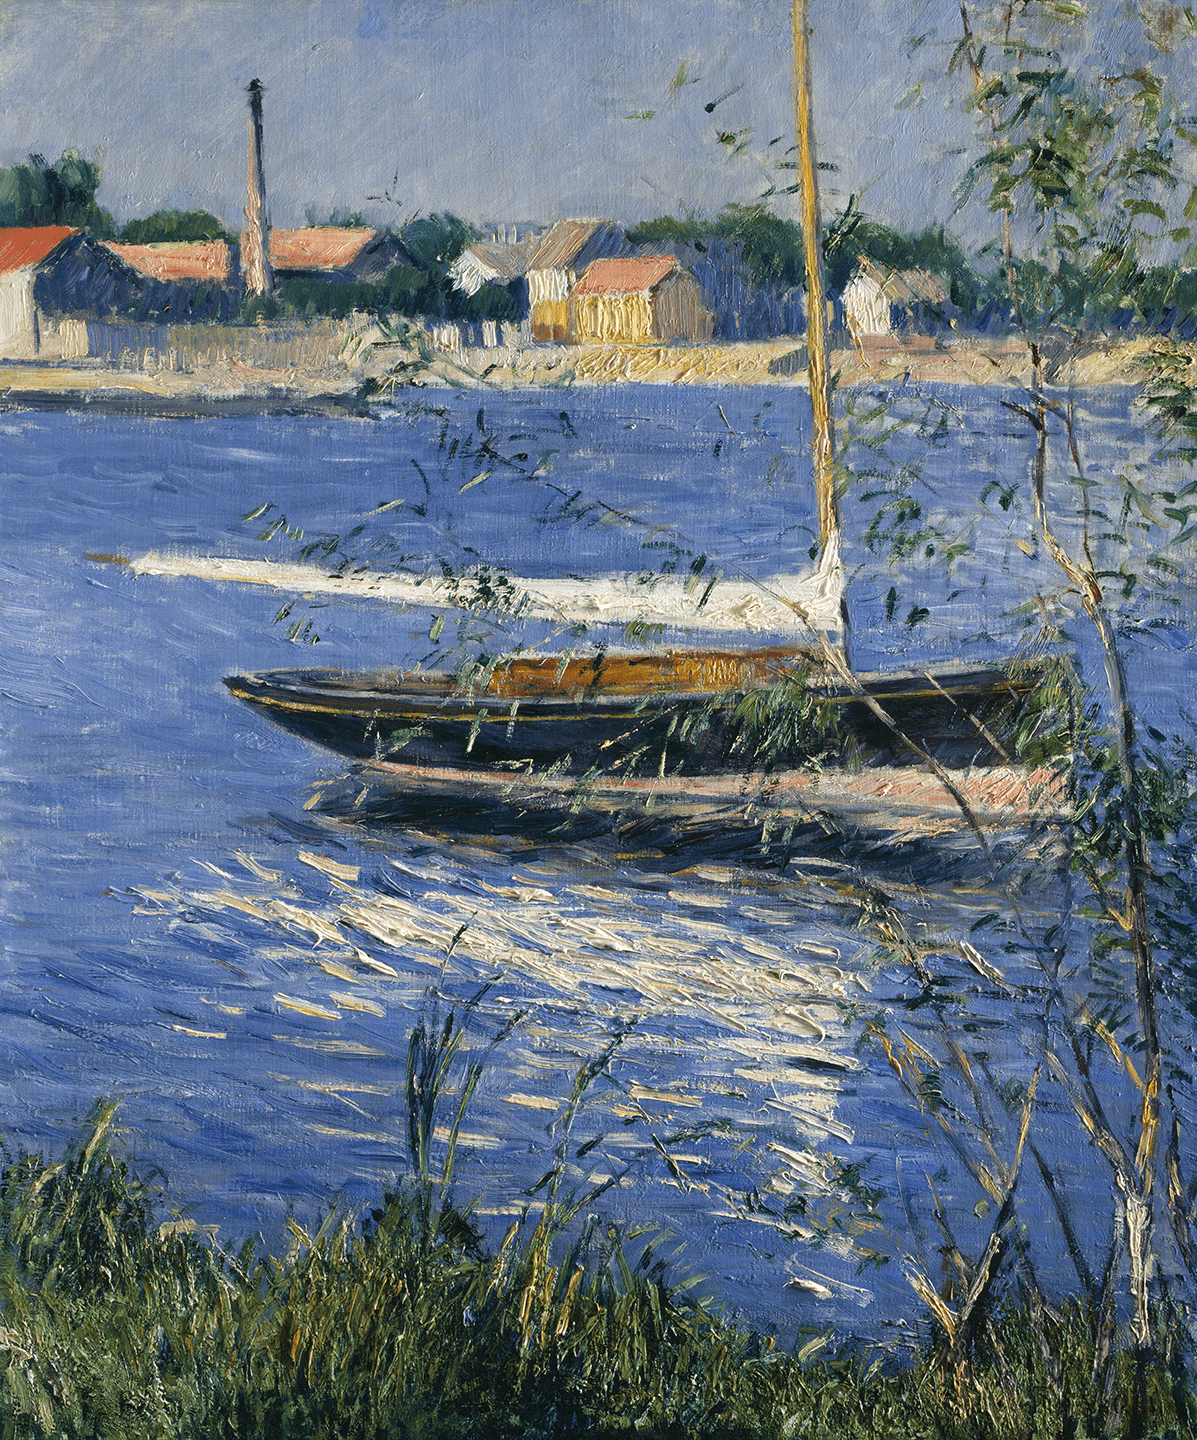 A sailboat moored on a river. Low nondescript white and yellow buildings and a smokestack occupy the opposite bank under a cloudless blue-gray sky.